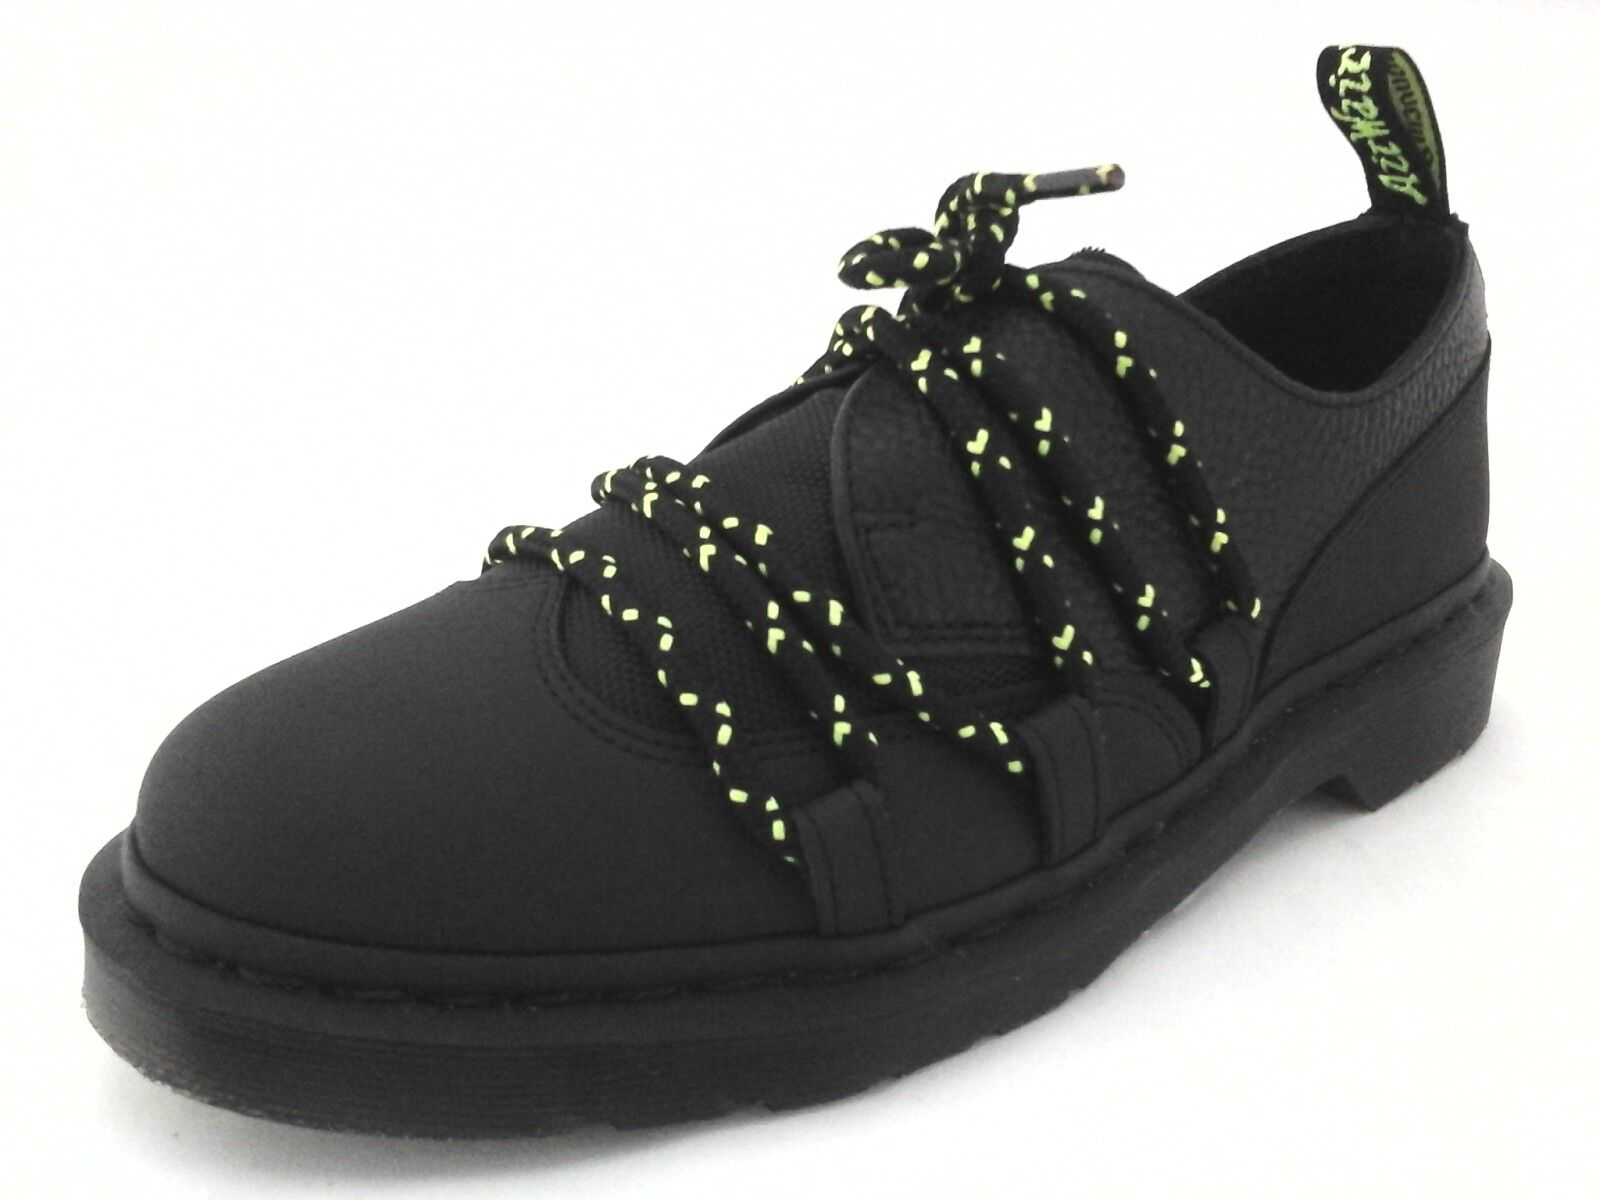 DR MARTENS Estrela shoes Brogues Oxfords Black Neon Punk Womens US 9 EU 41  130